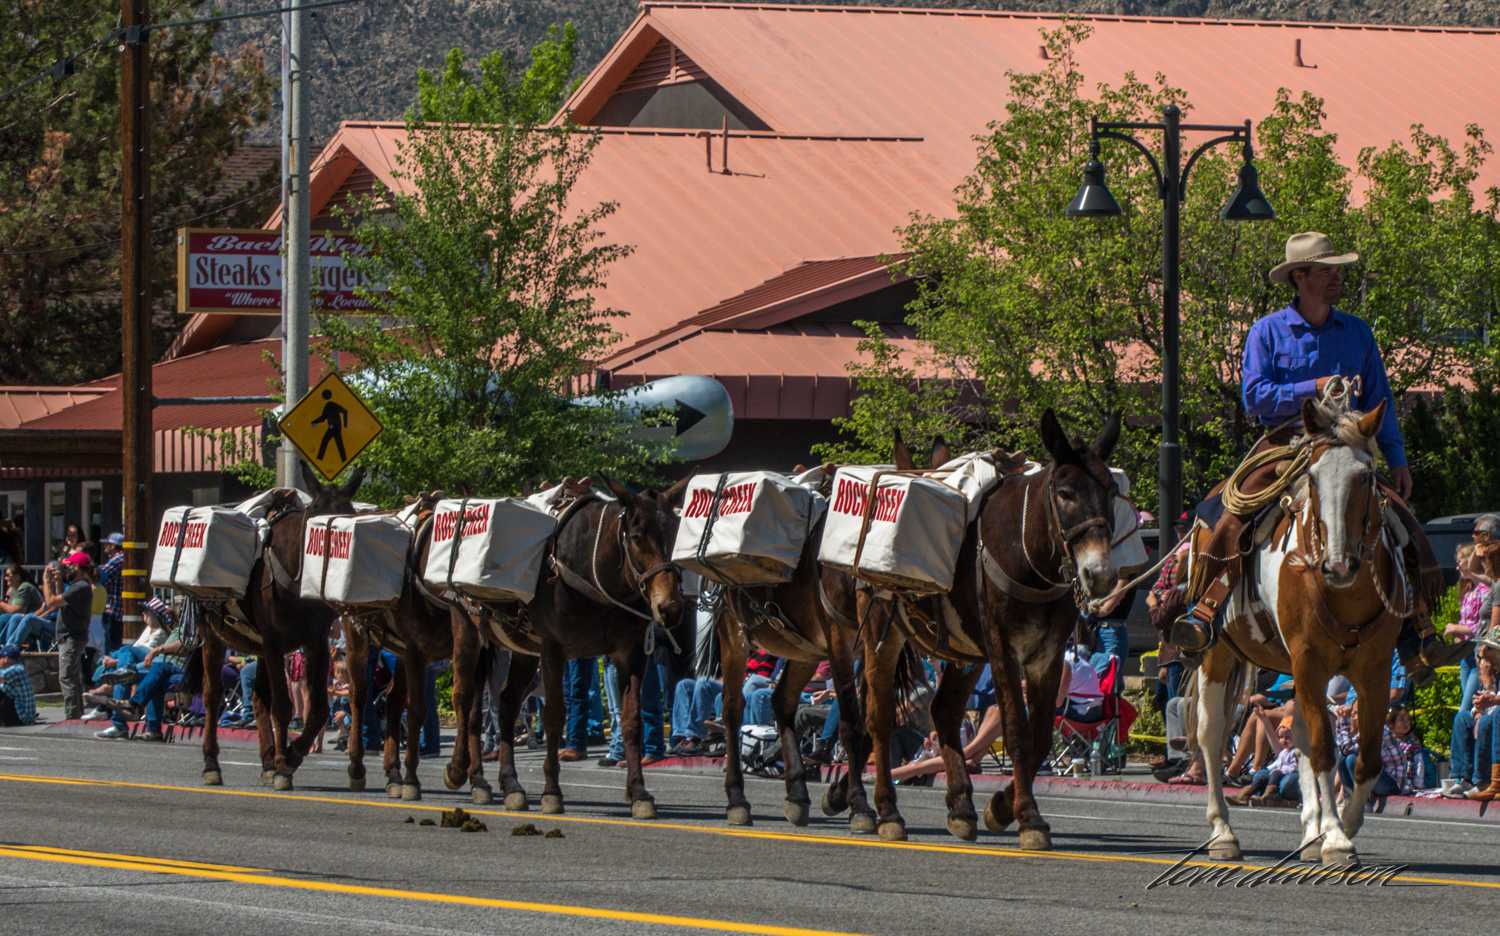 This was a common item in the parade as different packing companies advertised their services and gave us an idea of how the might look on the trail.